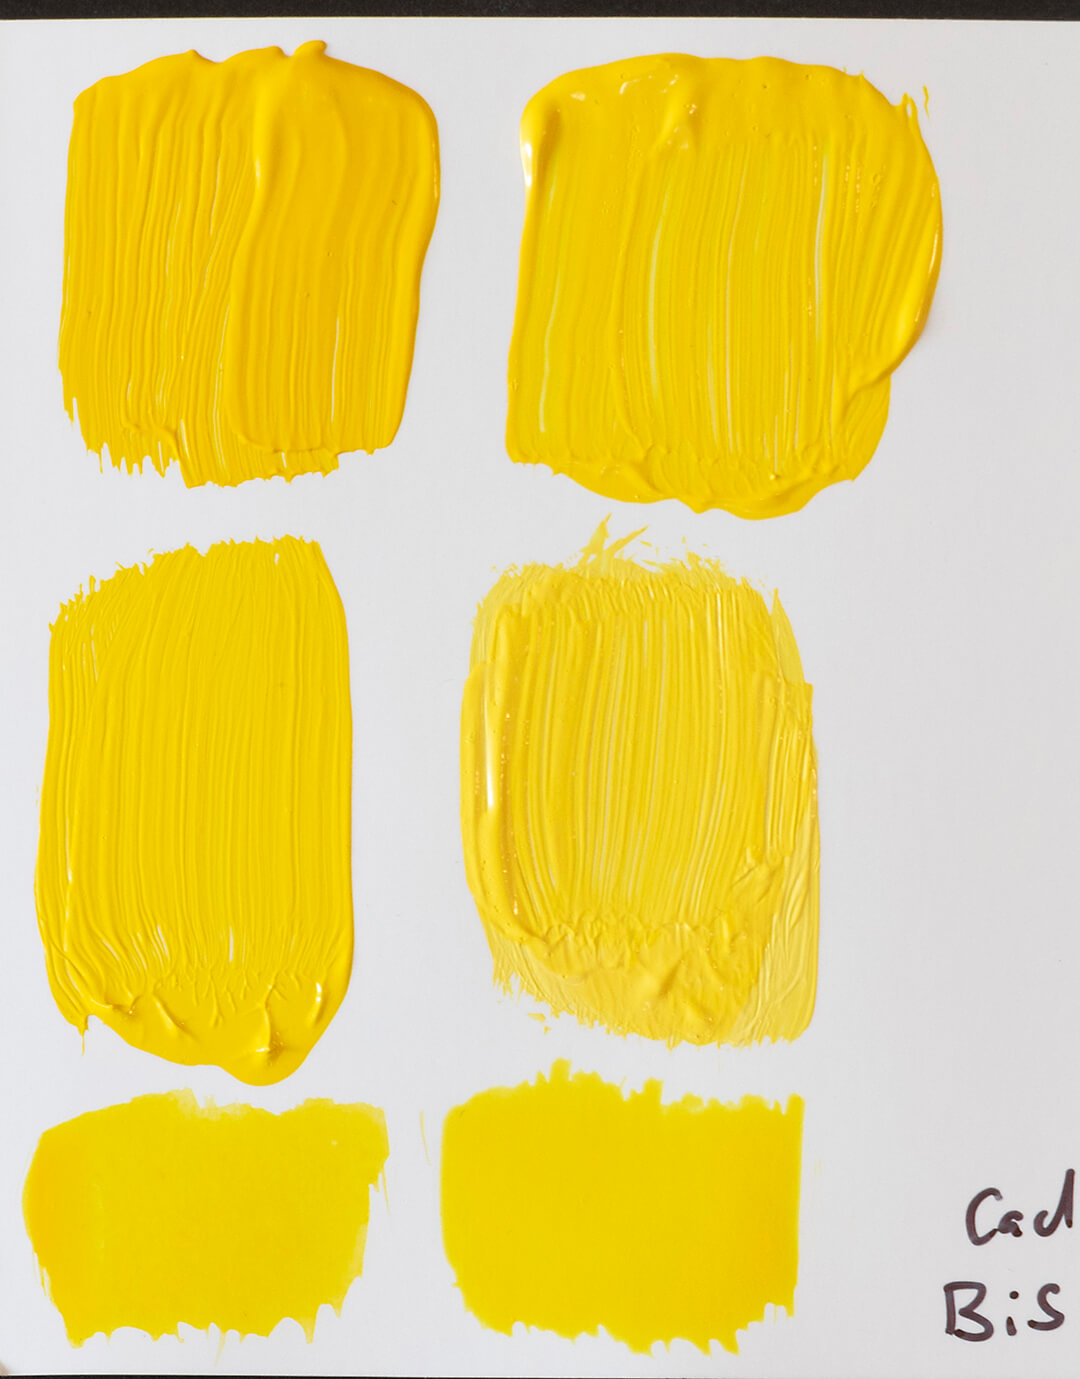 cadmium yellow swatches next to bismuth yellow swatches